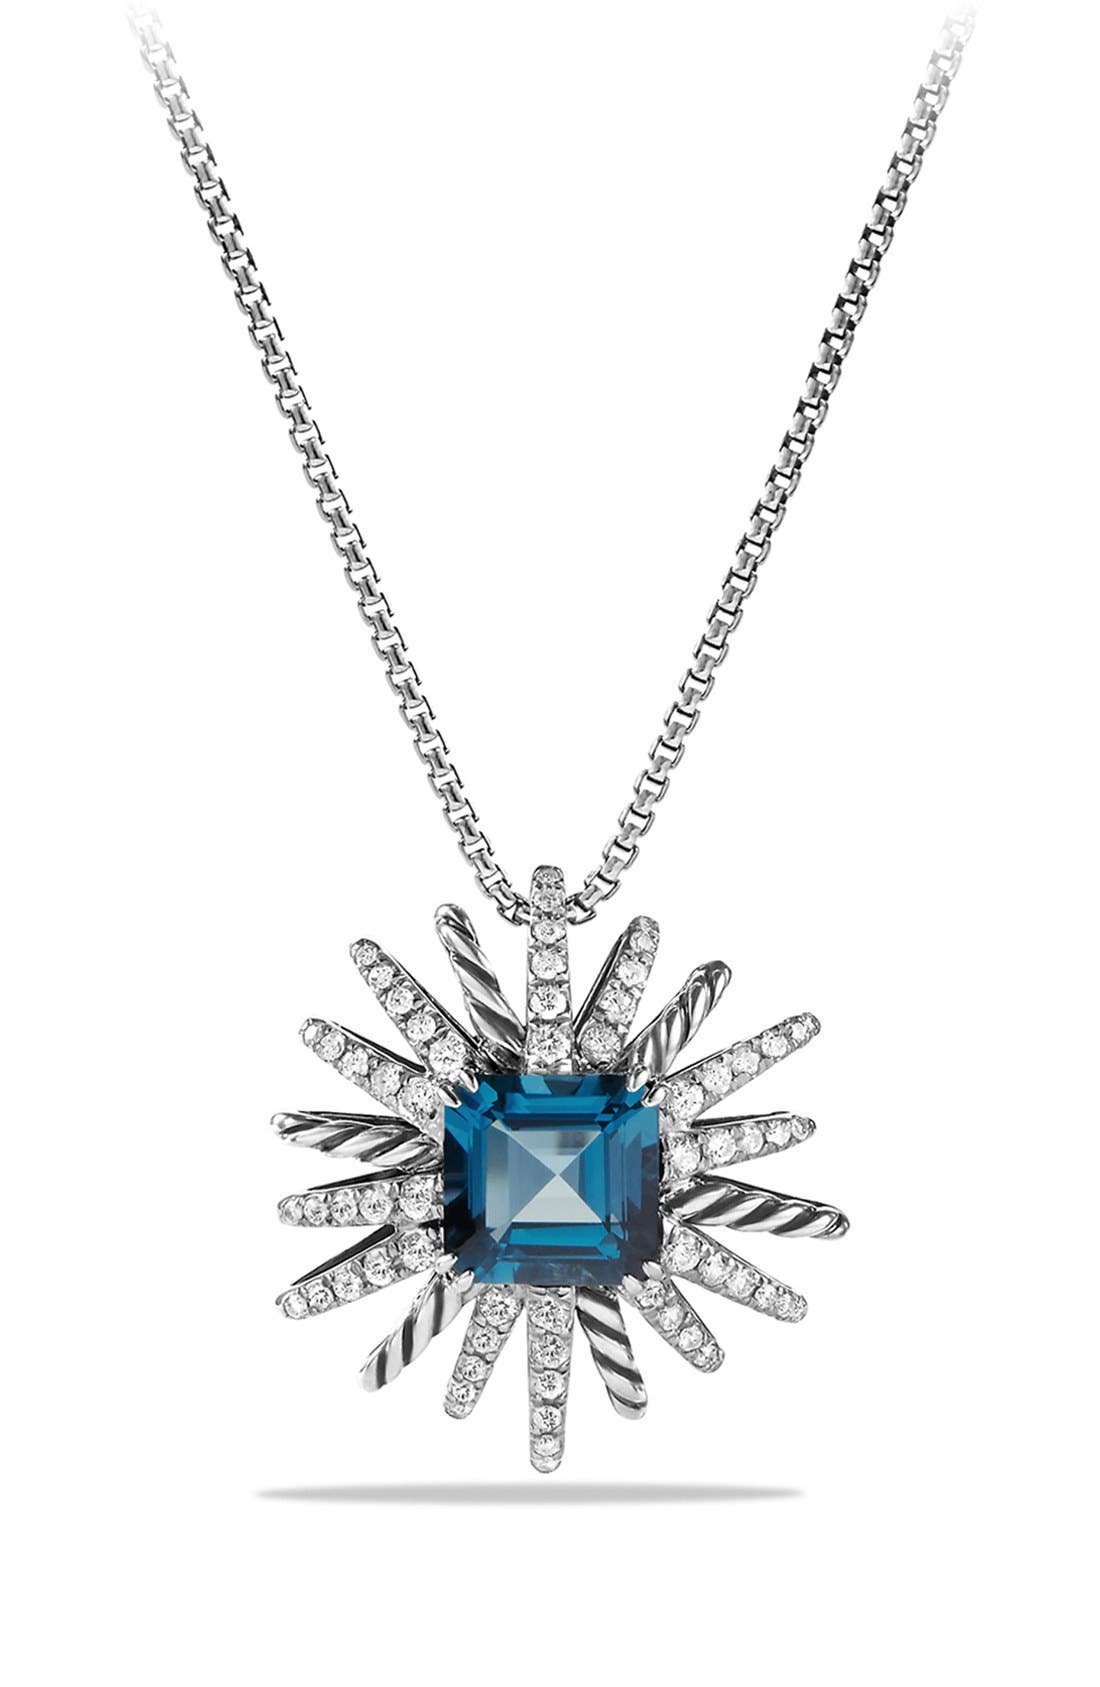 DAVID YURMAN Starburst Pendant Necklace